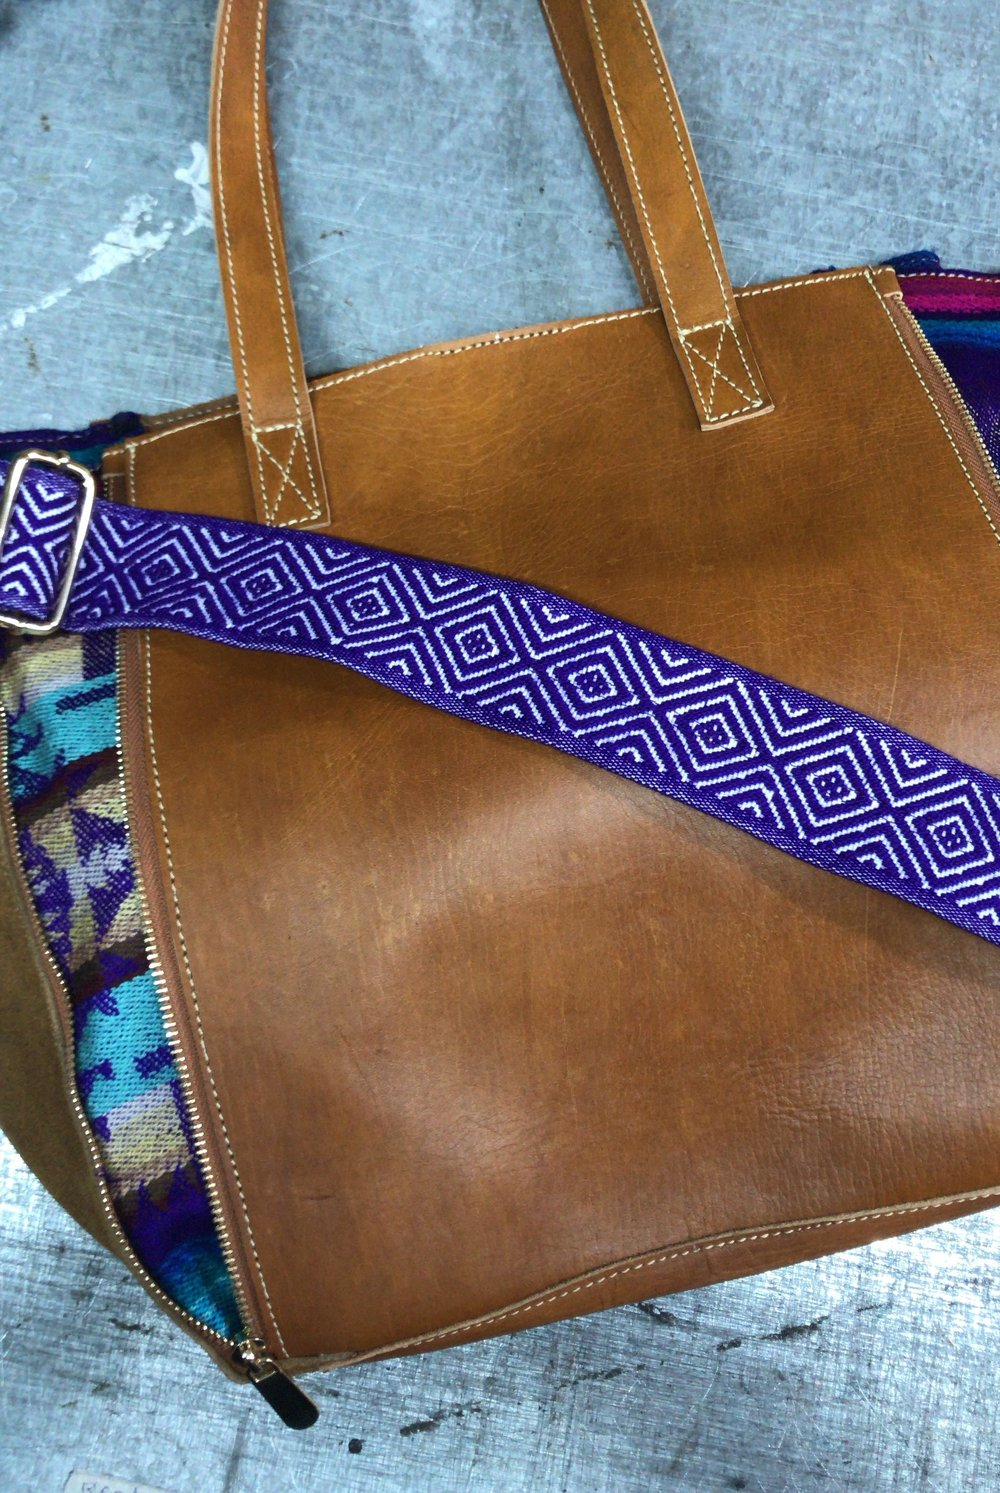 A fun new tote design ~ this bag can be converted into solid leather with the use of a zipper!